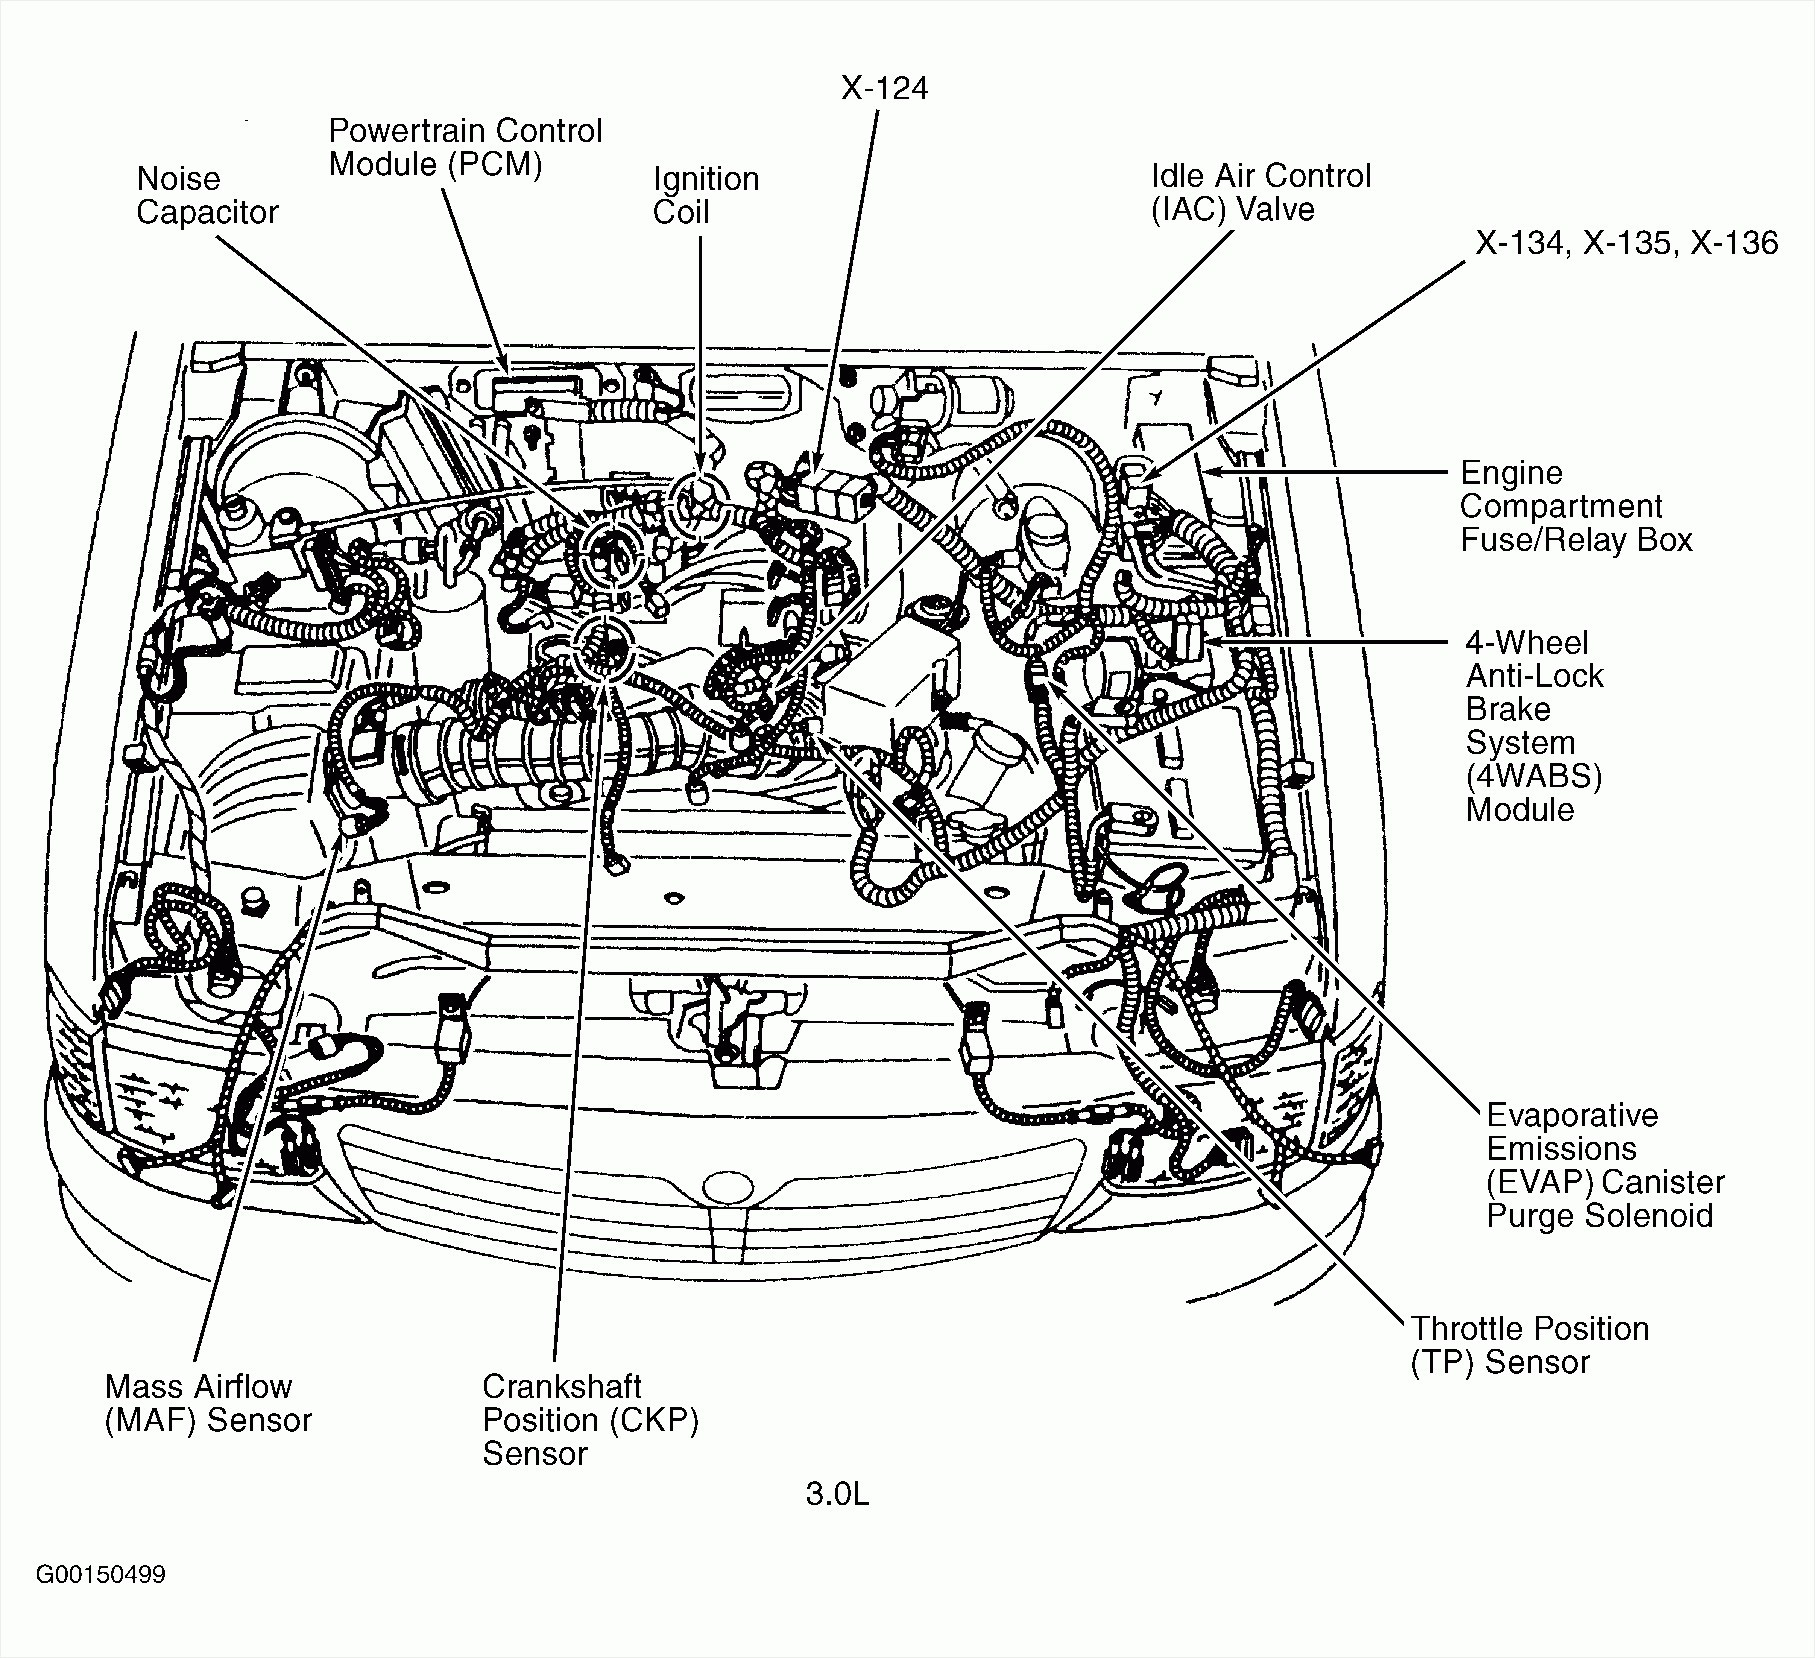 2001 Ford Ranger Engine Diagram Wiring Diagram List Pure List Pure Lechicchedimammavale It